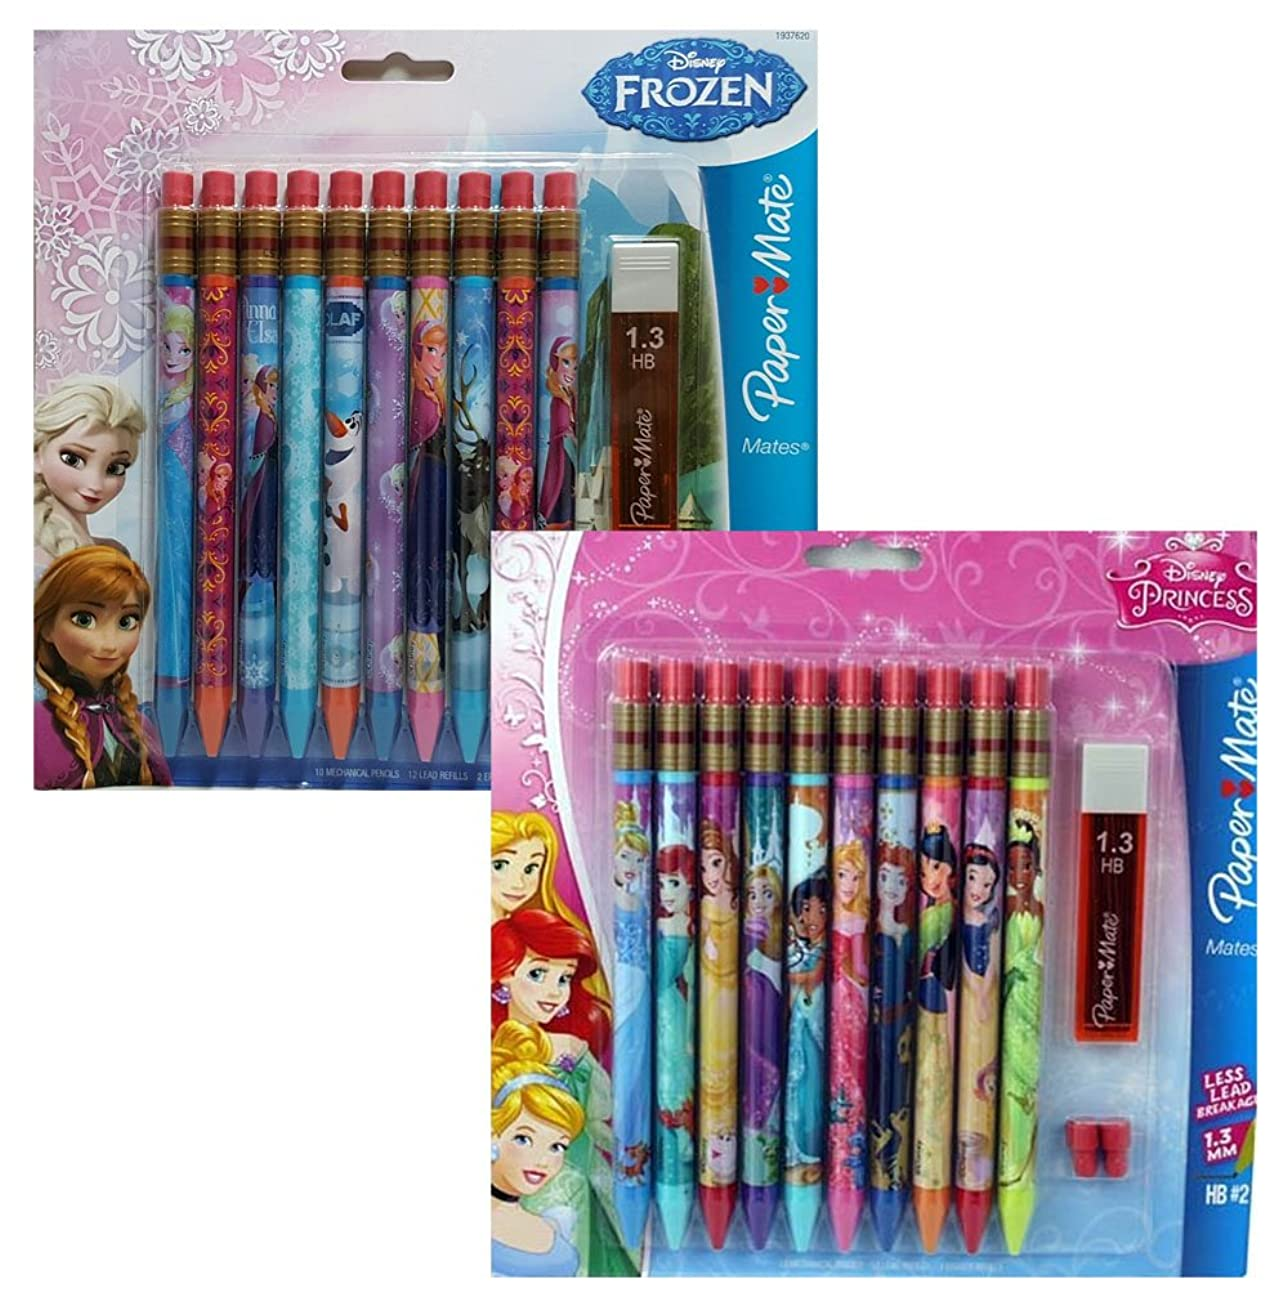 Papermate Disney Princess and Frozen Mechanical Pencils 10 Count (Set of 2)